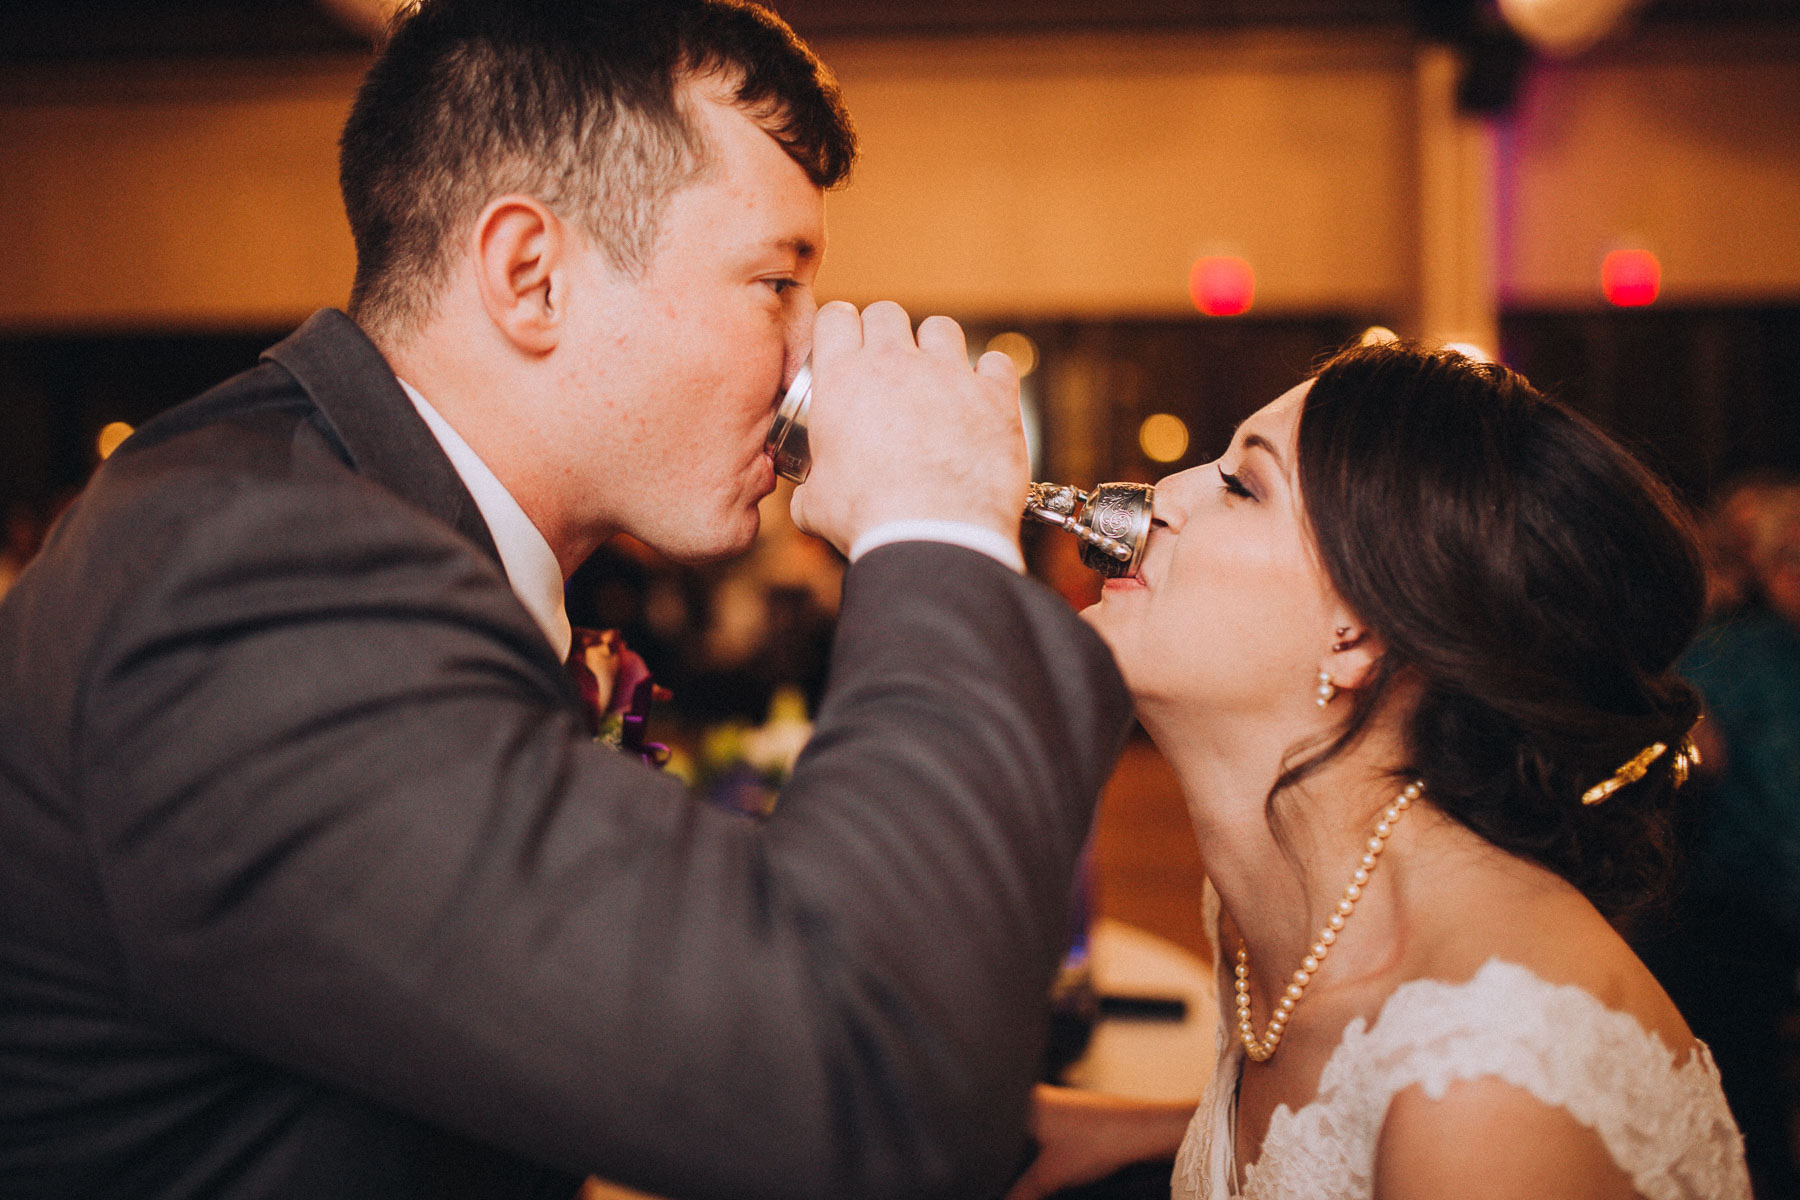 Bride and groom share a drink in a two-cup toast during their wedding reception at the Wedgewood Black Forest.